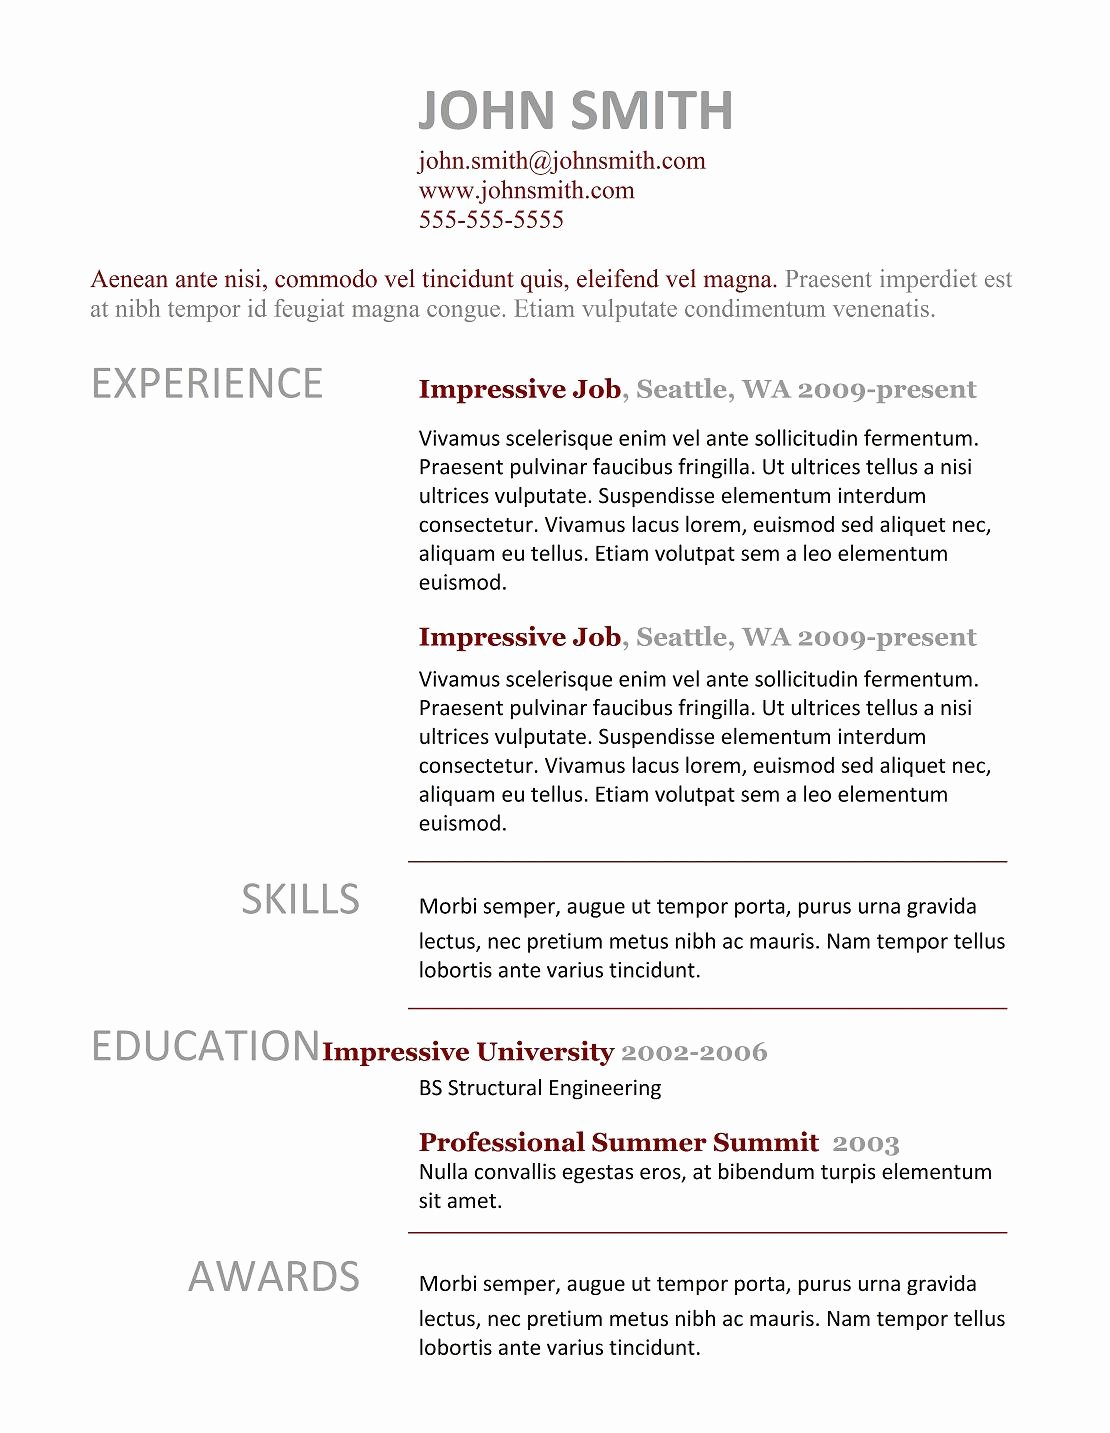 Simple Professional Resume Template Inspirational 7 Simple Resume Templates Free